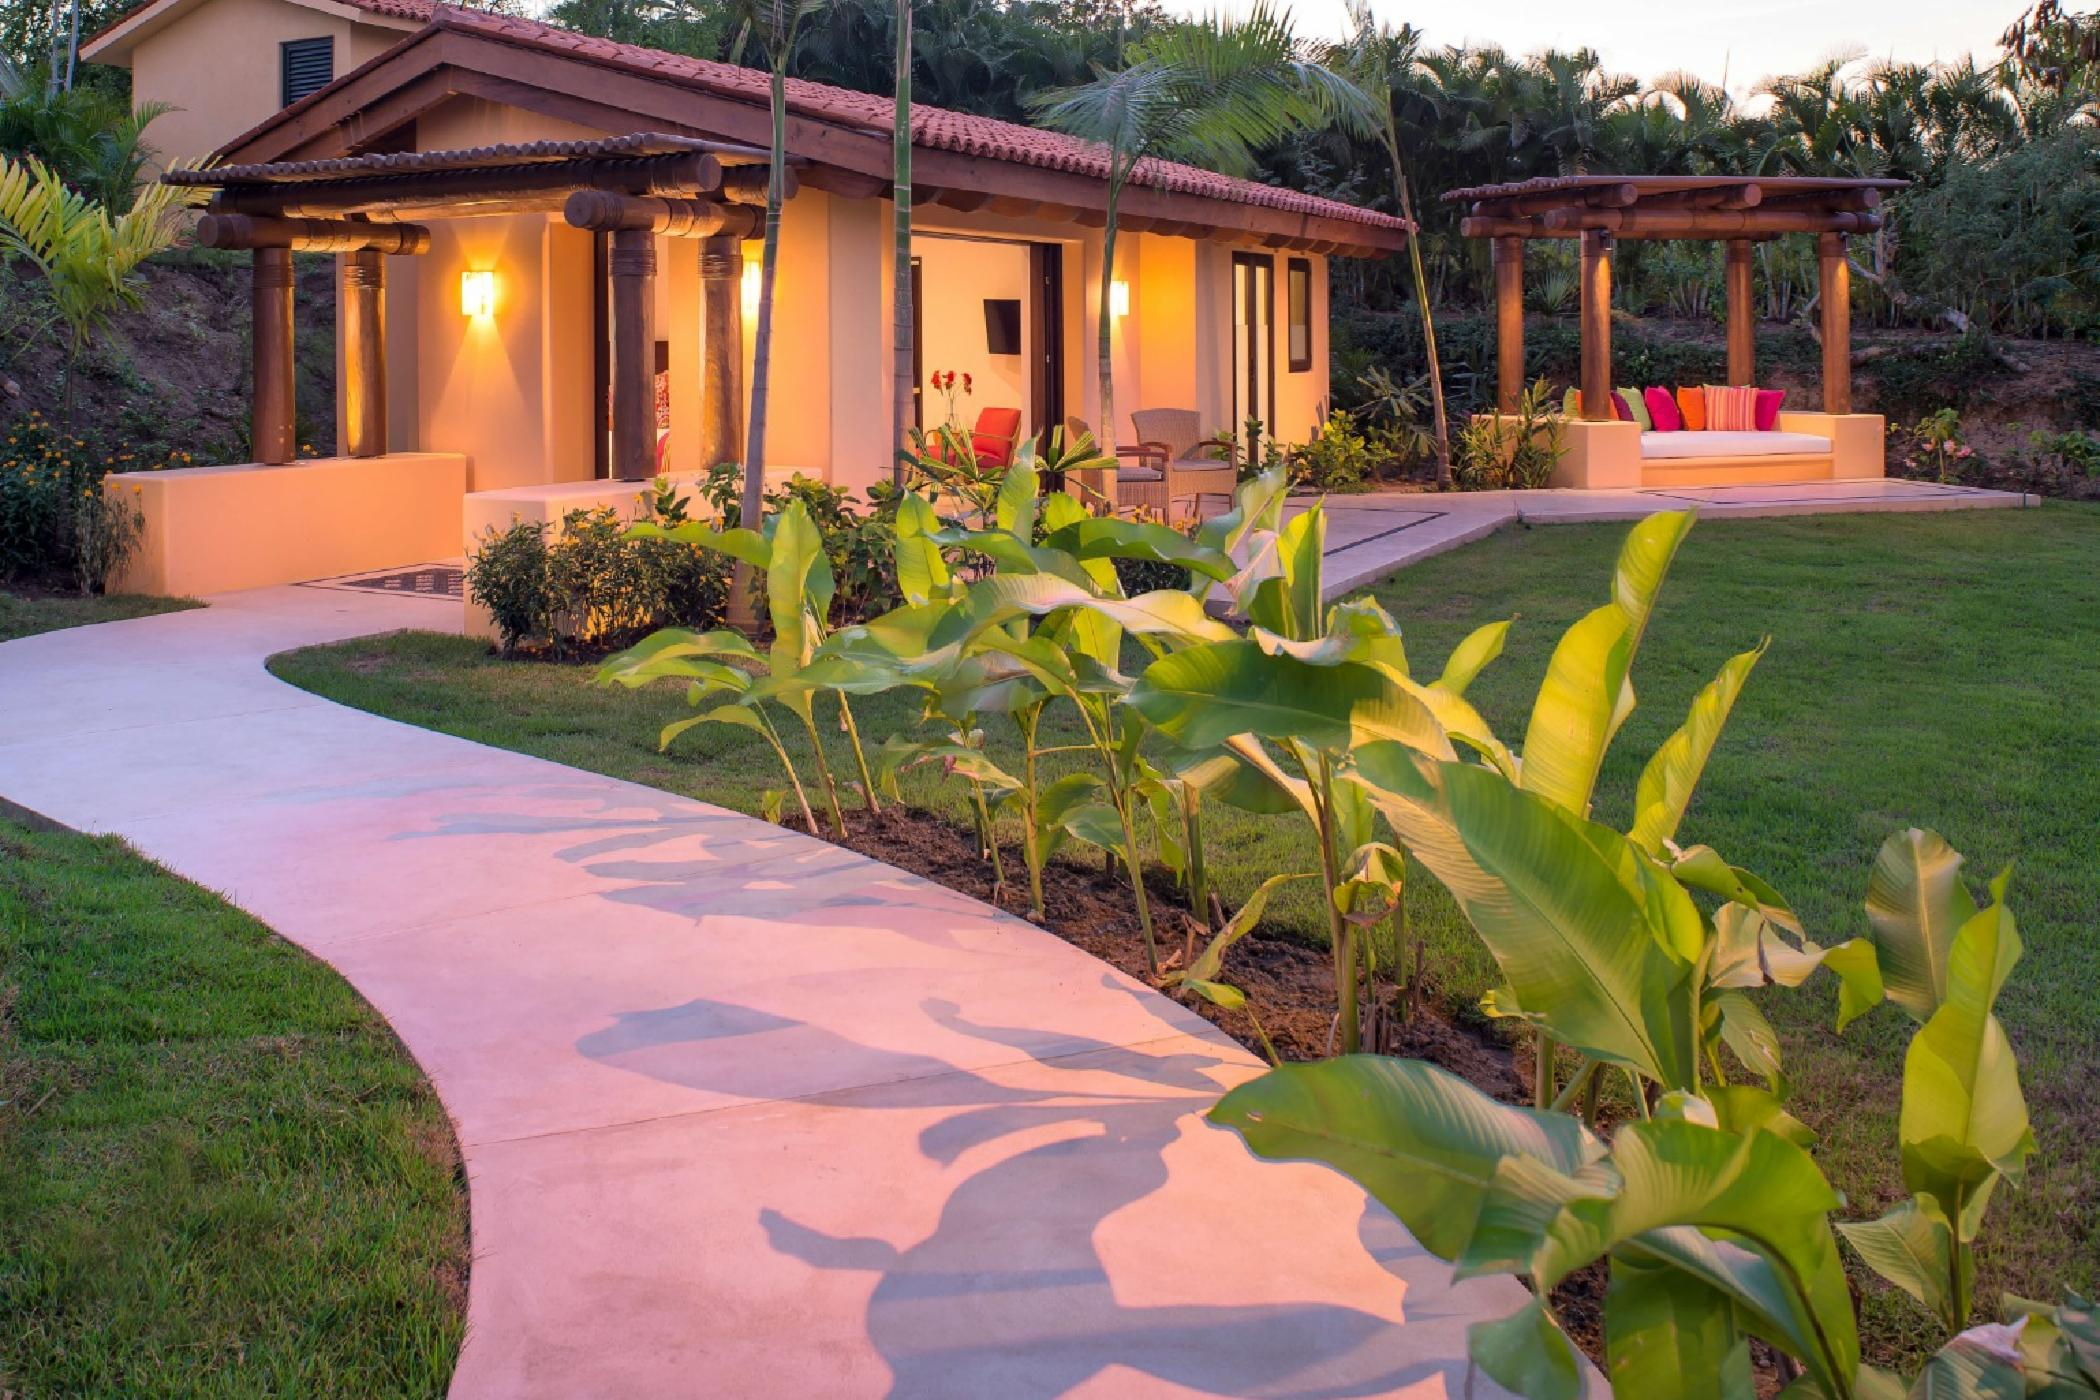 A private casita close to the beach is the perfect romantic getaway.